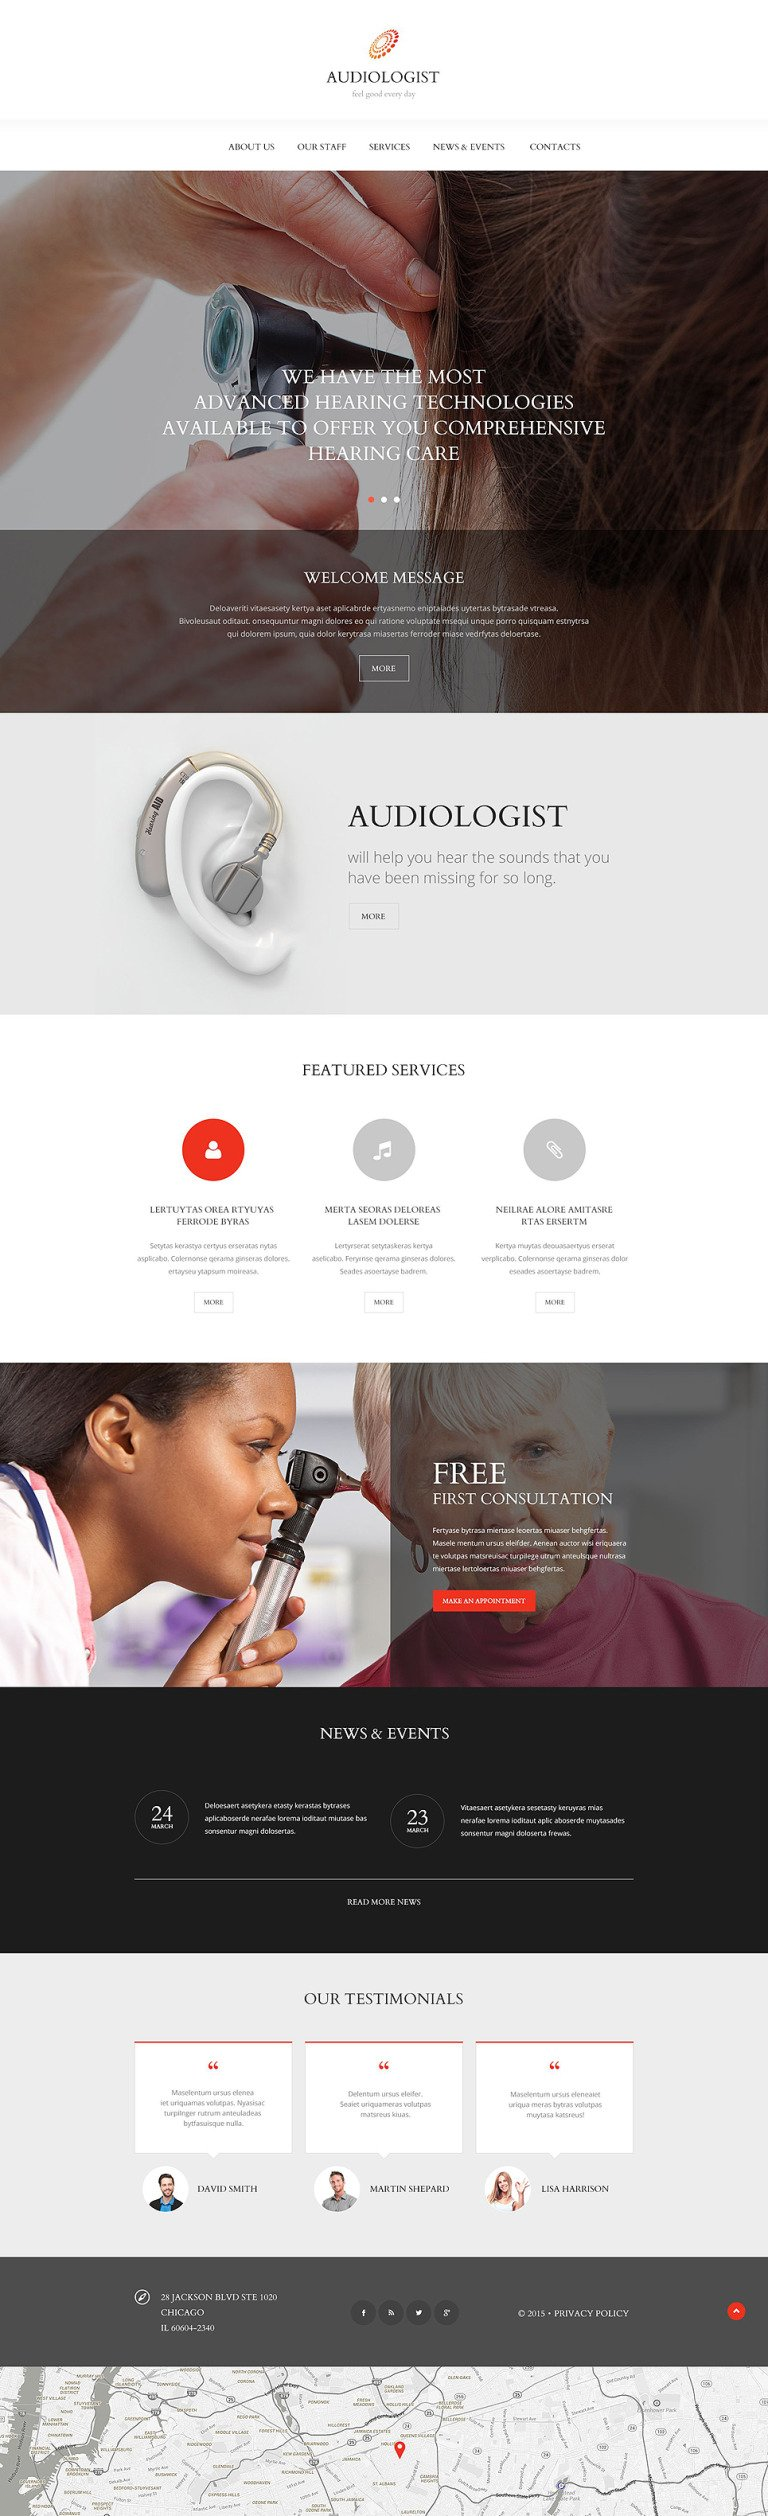 Medical Equipment Website Template New Screenshots BIG